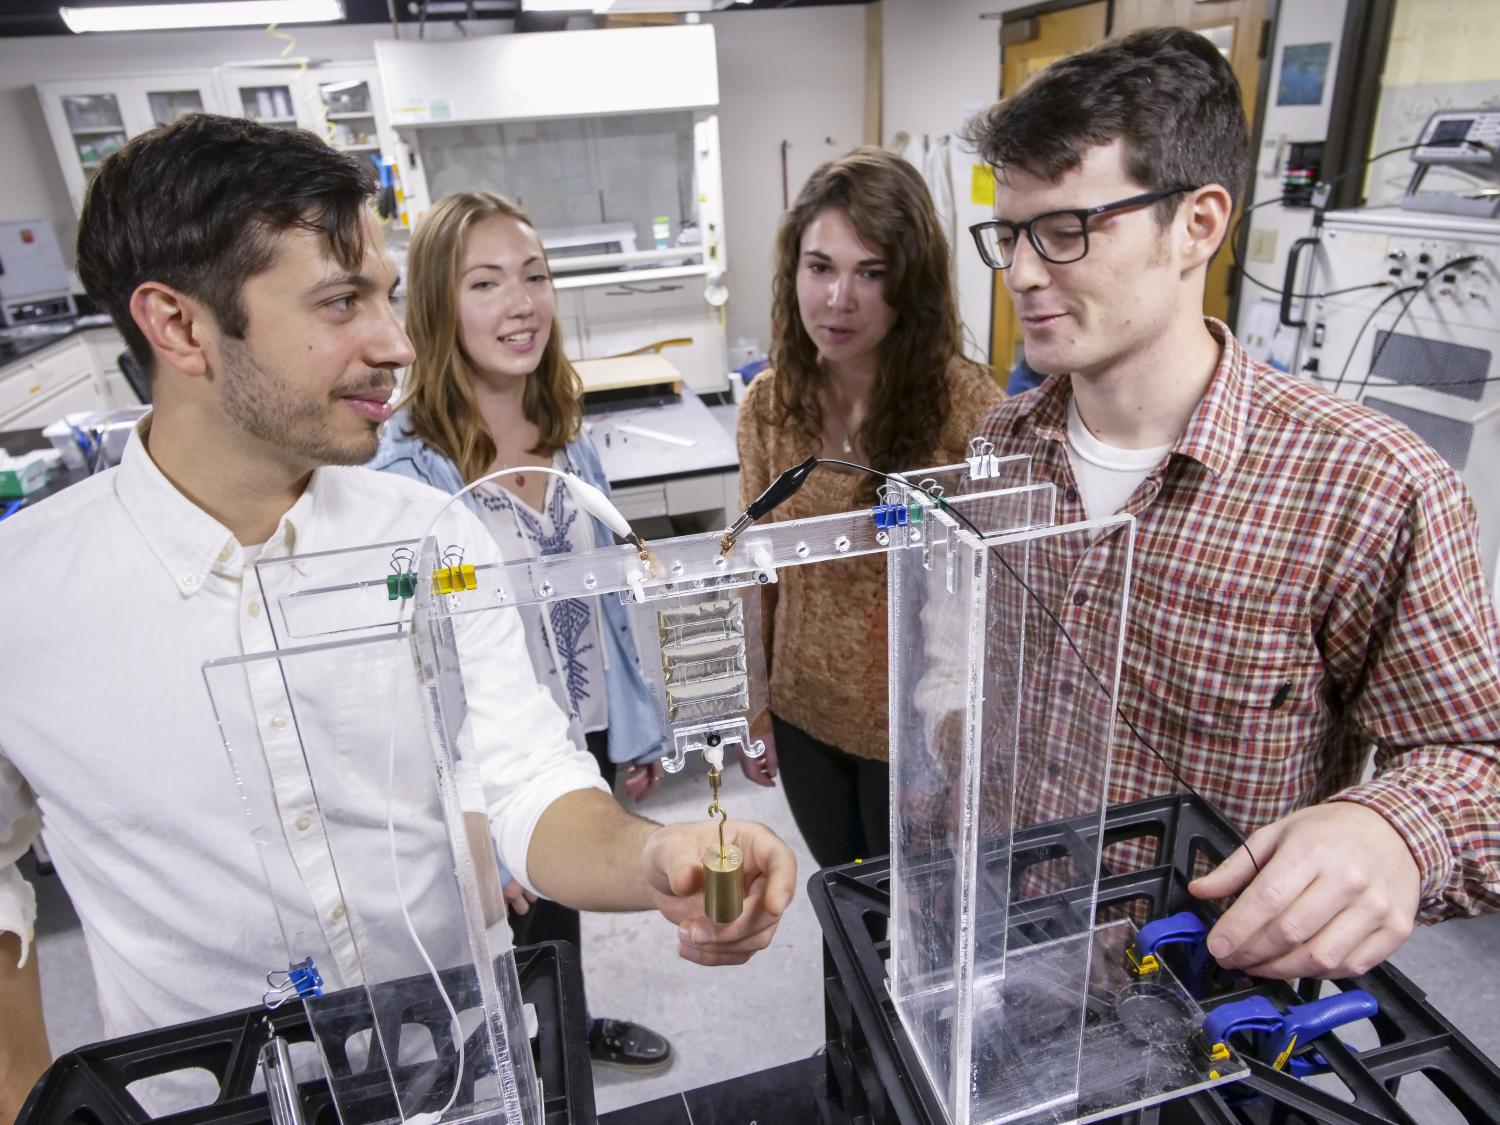 Students work in mechanical engineering lab with artificial muscles